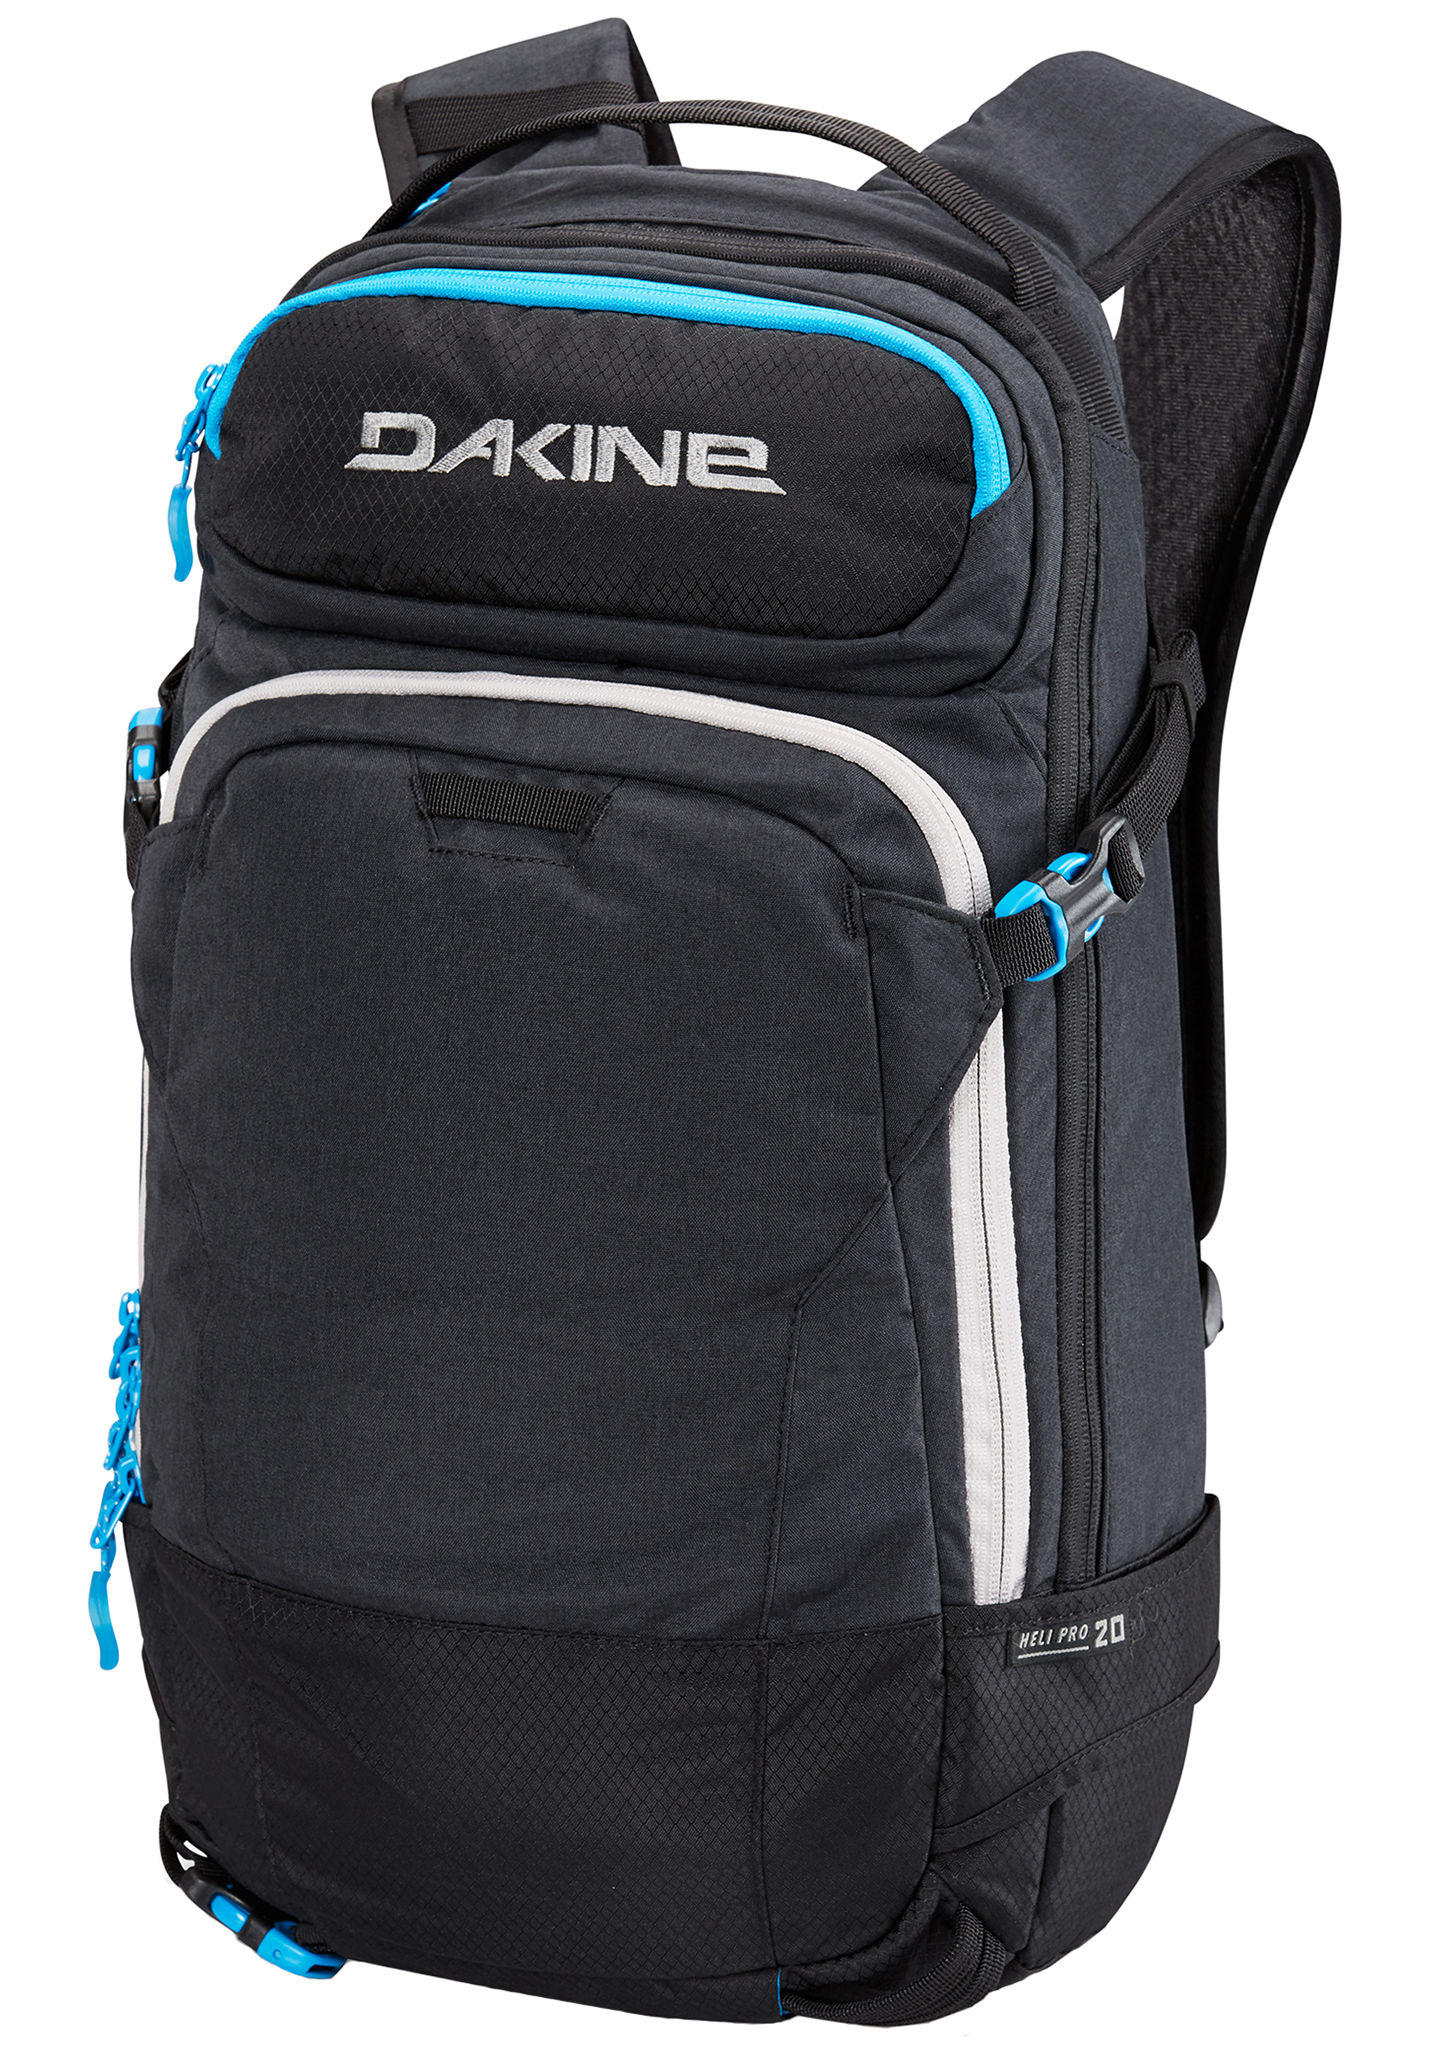 Dakine Heli Pro 20L - Backpack for Men - Black - Planet Sports